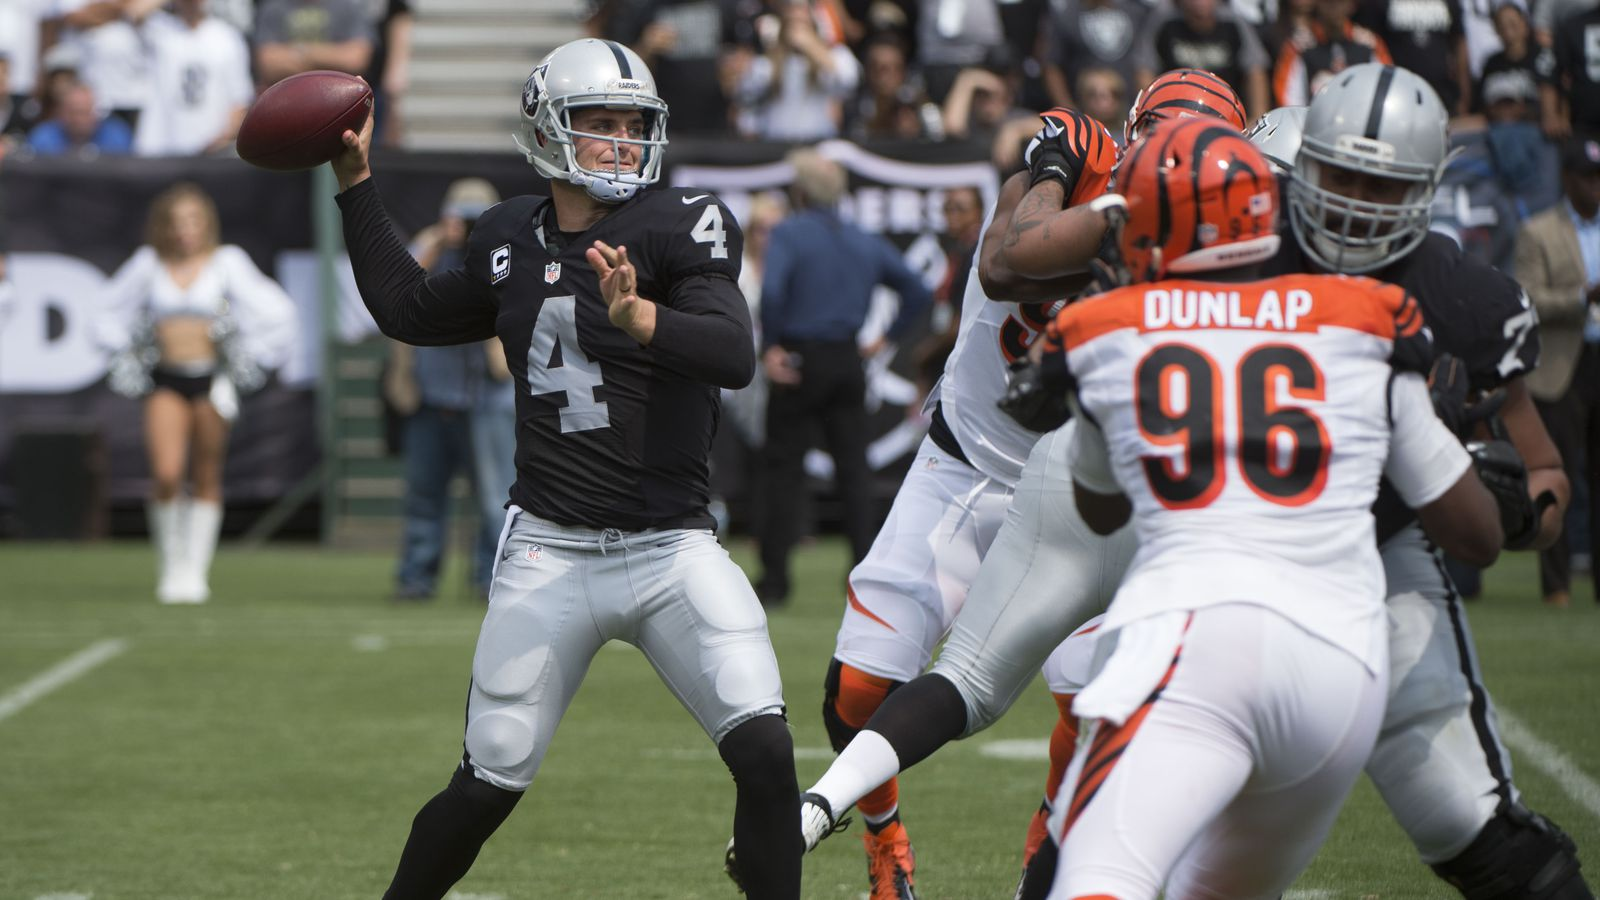 Get the latest Oakland Raiders news scores stats standings rumors and more from ESPN